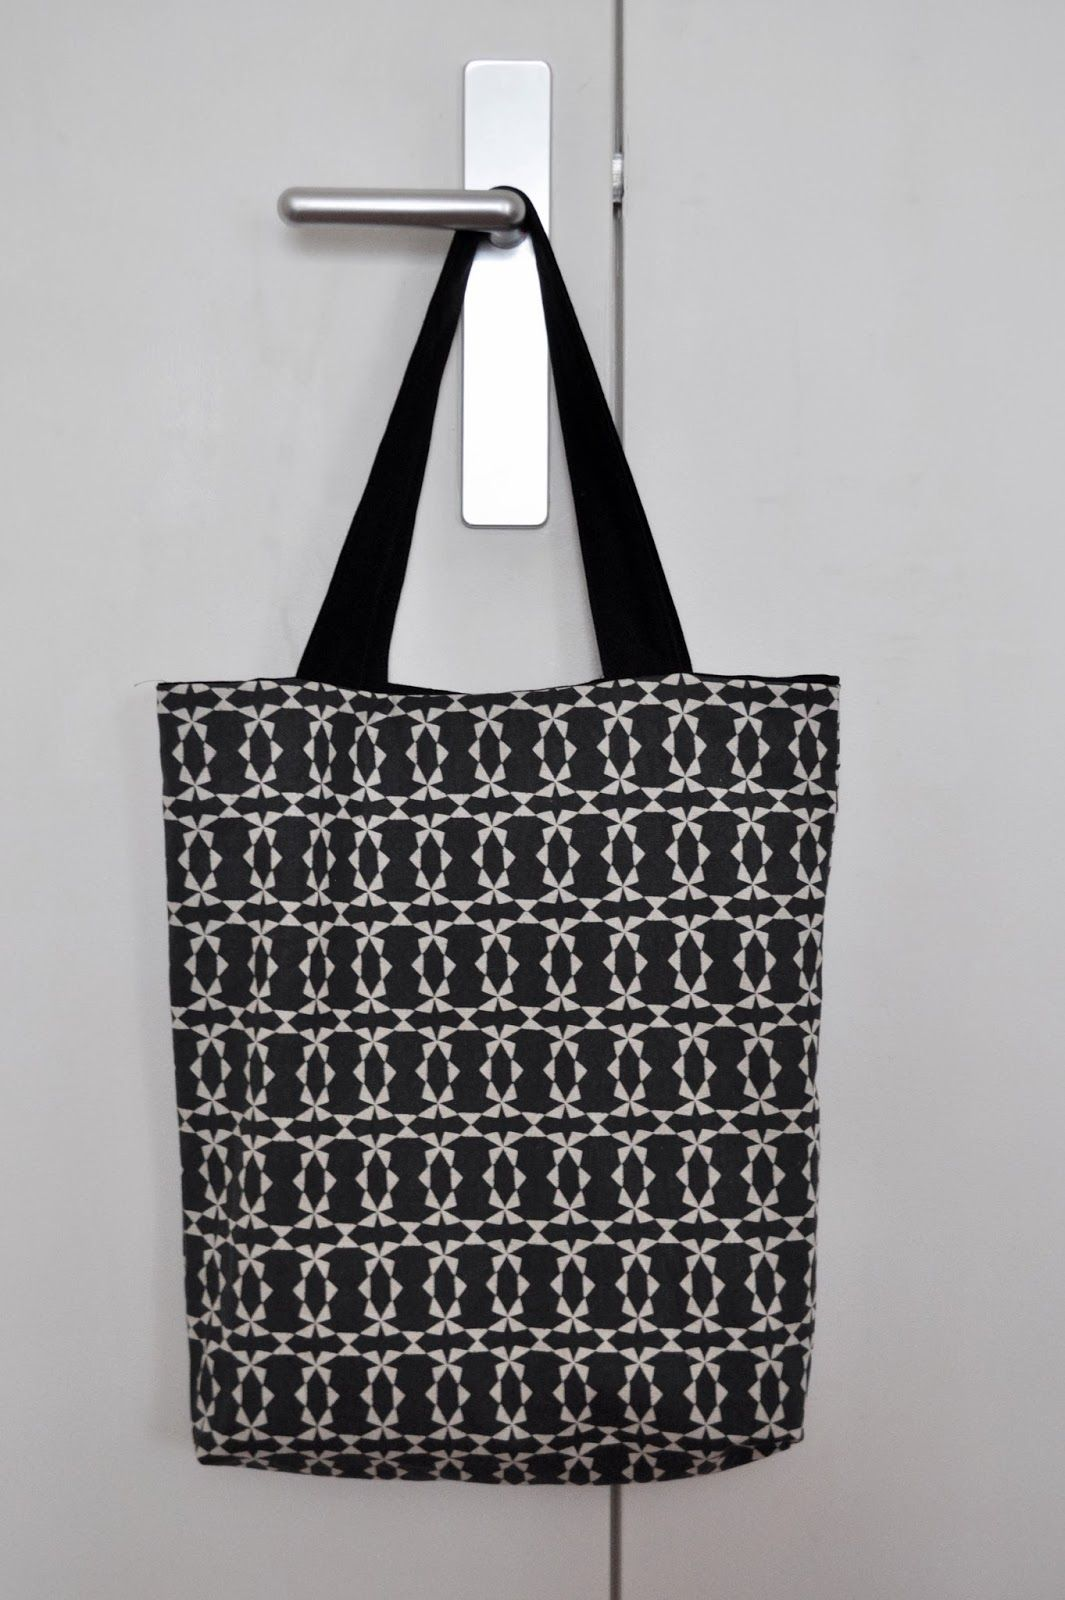 tuto tote bag r versible couture sac couture sac et. Black Bedroom Furniture Sets. Home Design Ideas